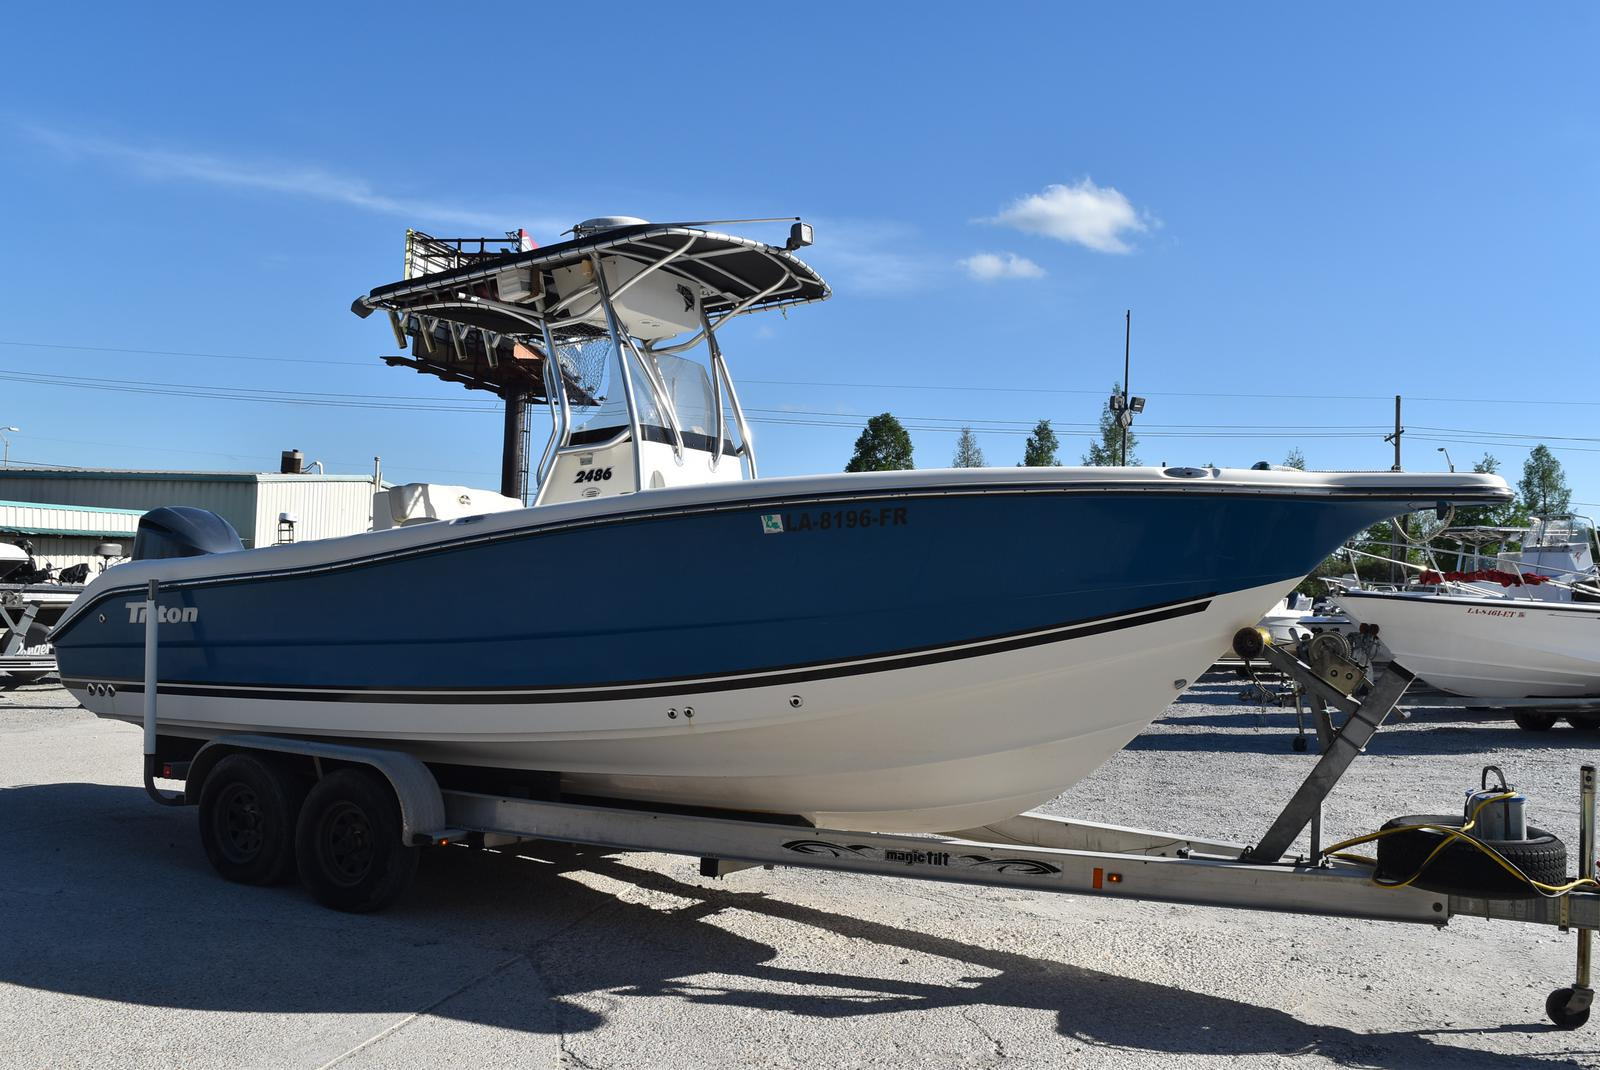 2006 Triton boat for sale, model of the boat is 2486 & Image # 16 of 24